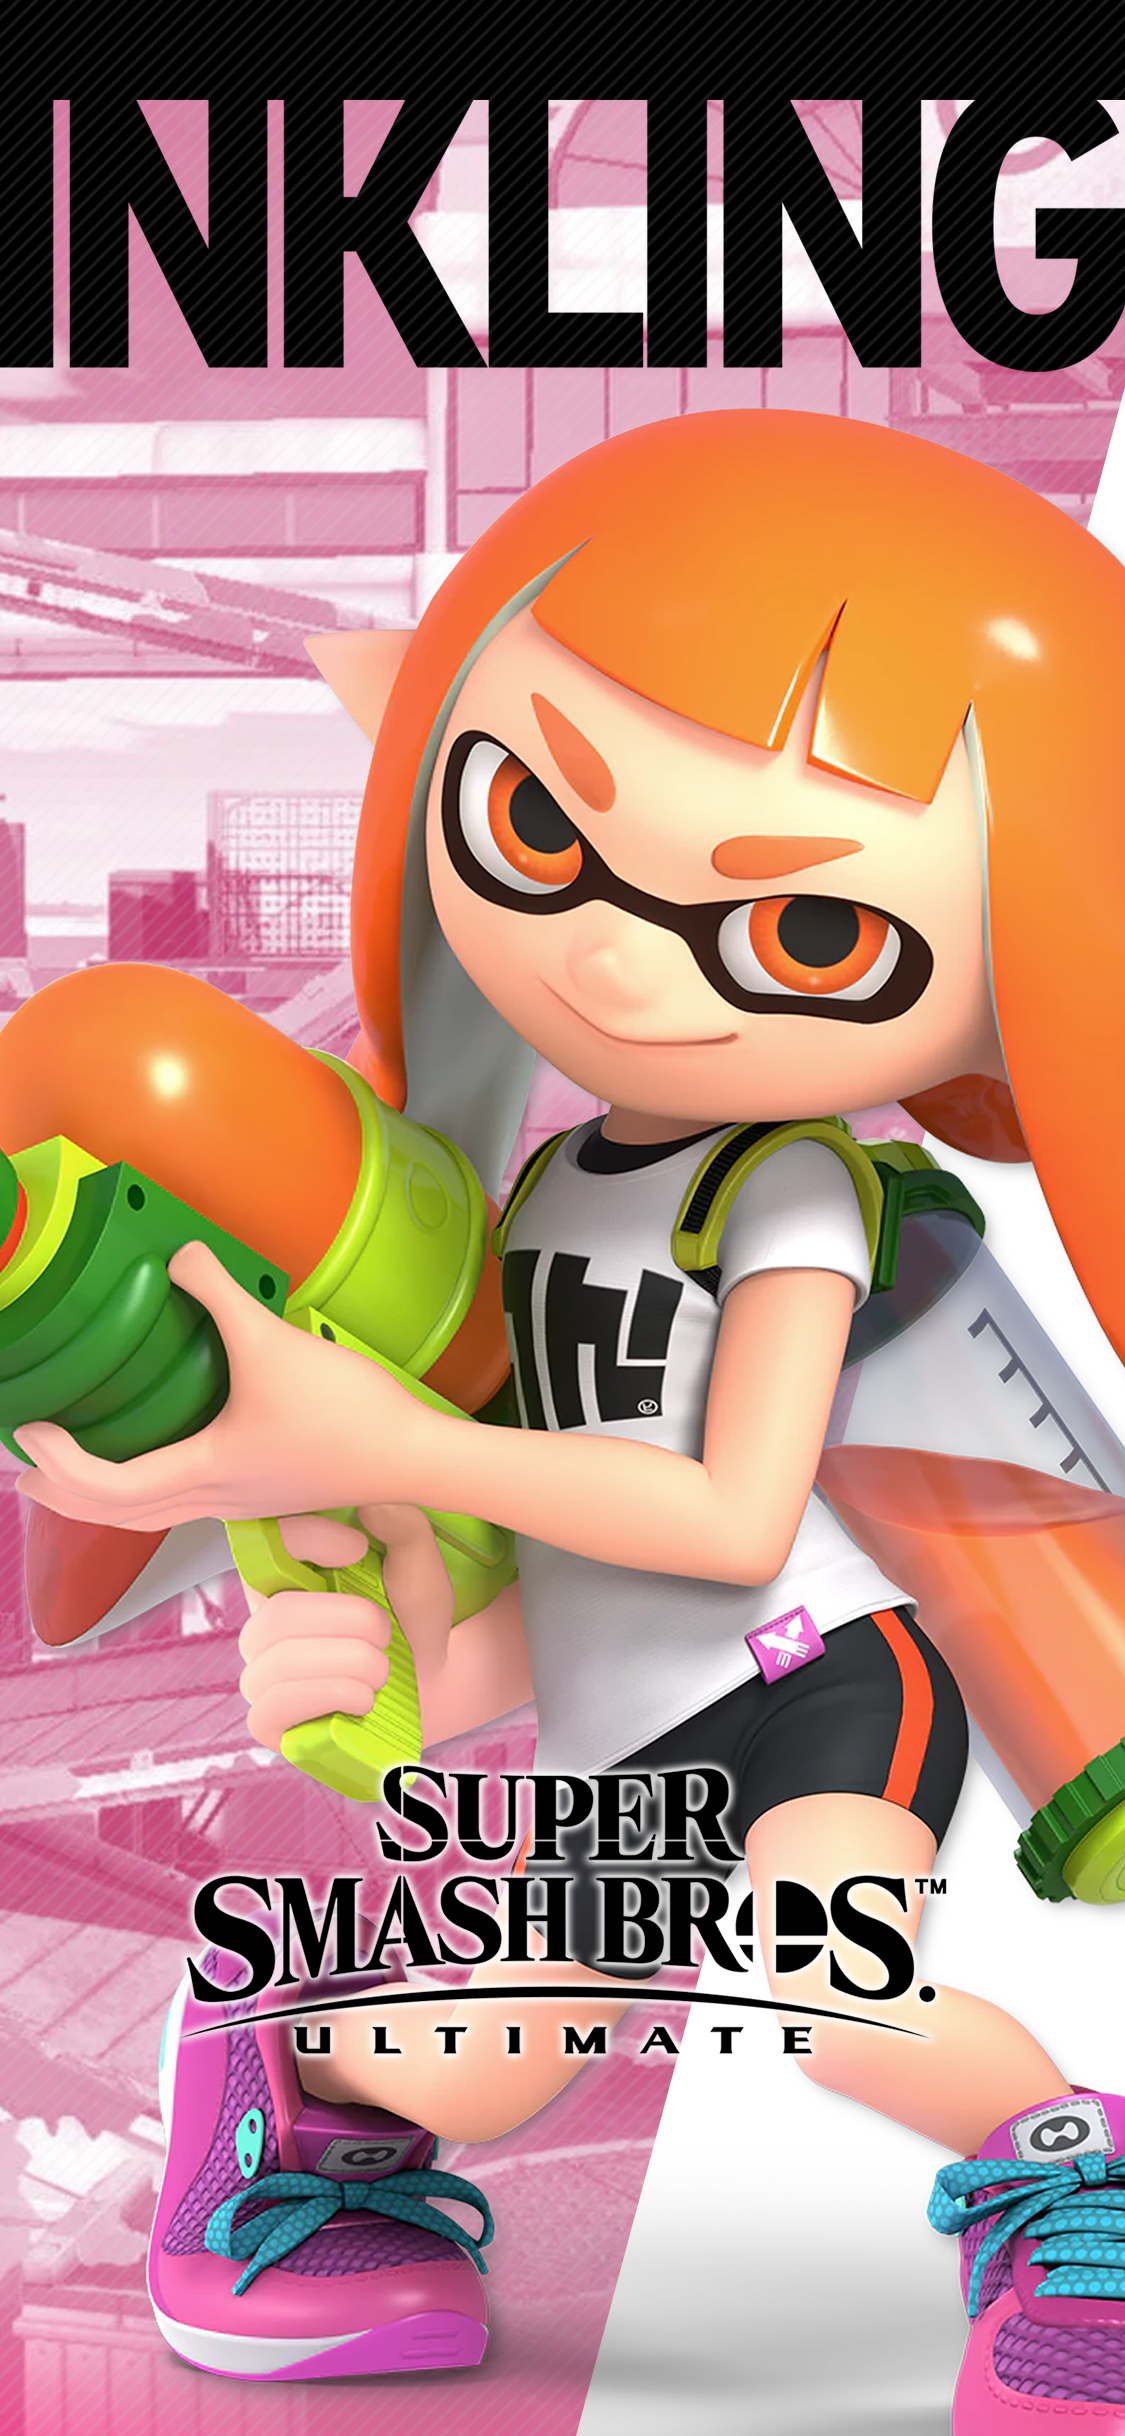 Joker Animated Wallpaper Super Smash Bros Ultimate Inkling Wallpapers Cat With